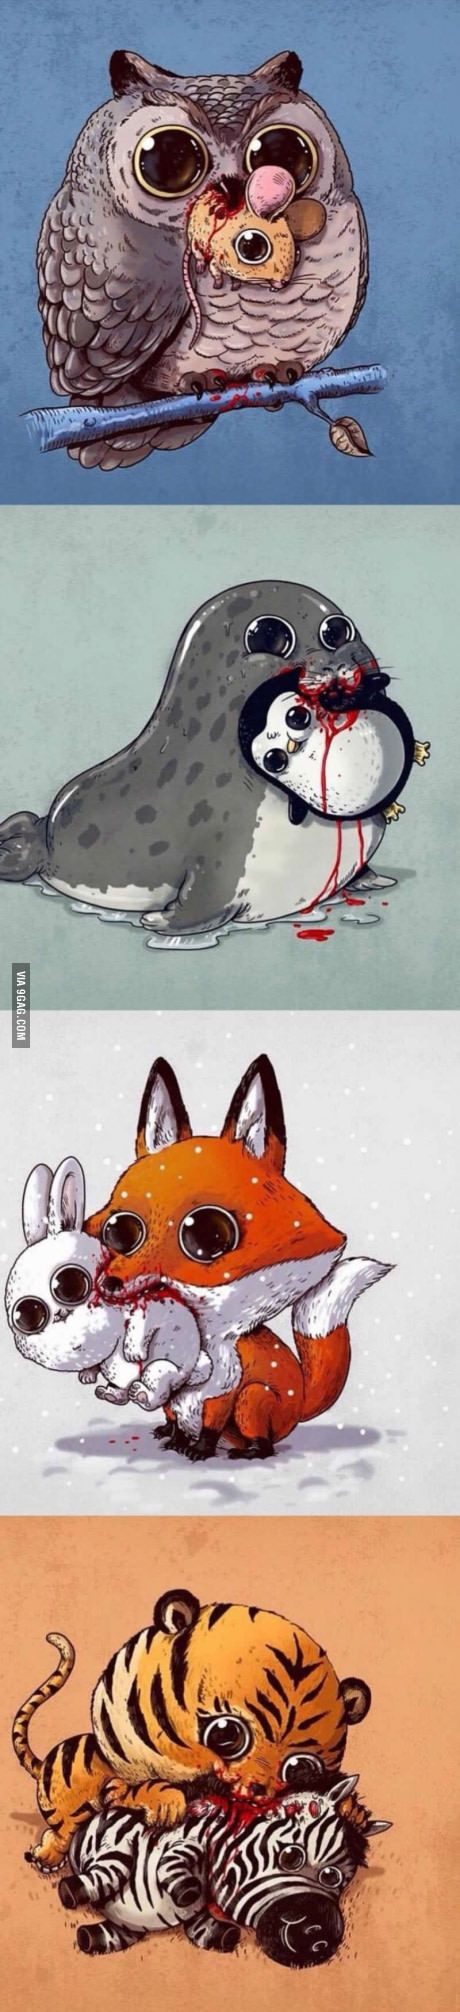 Cute little murderers (By Alex Solis)                                                                                                                                                                                 More